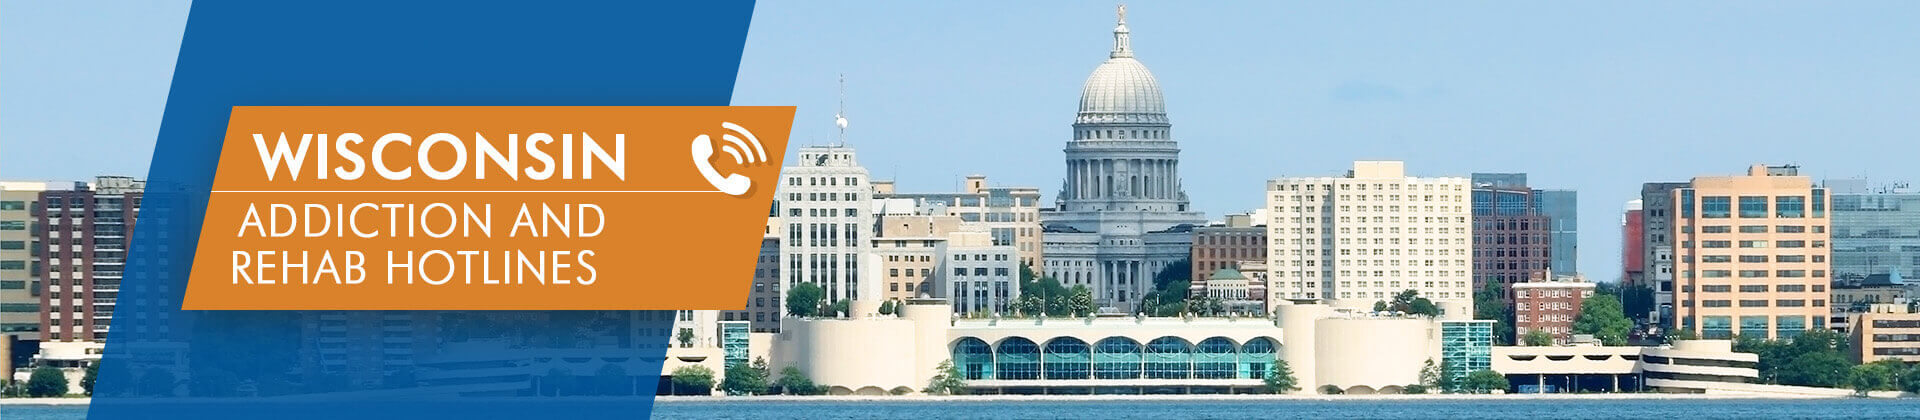 Wisconsin addiction and rehab hotlines